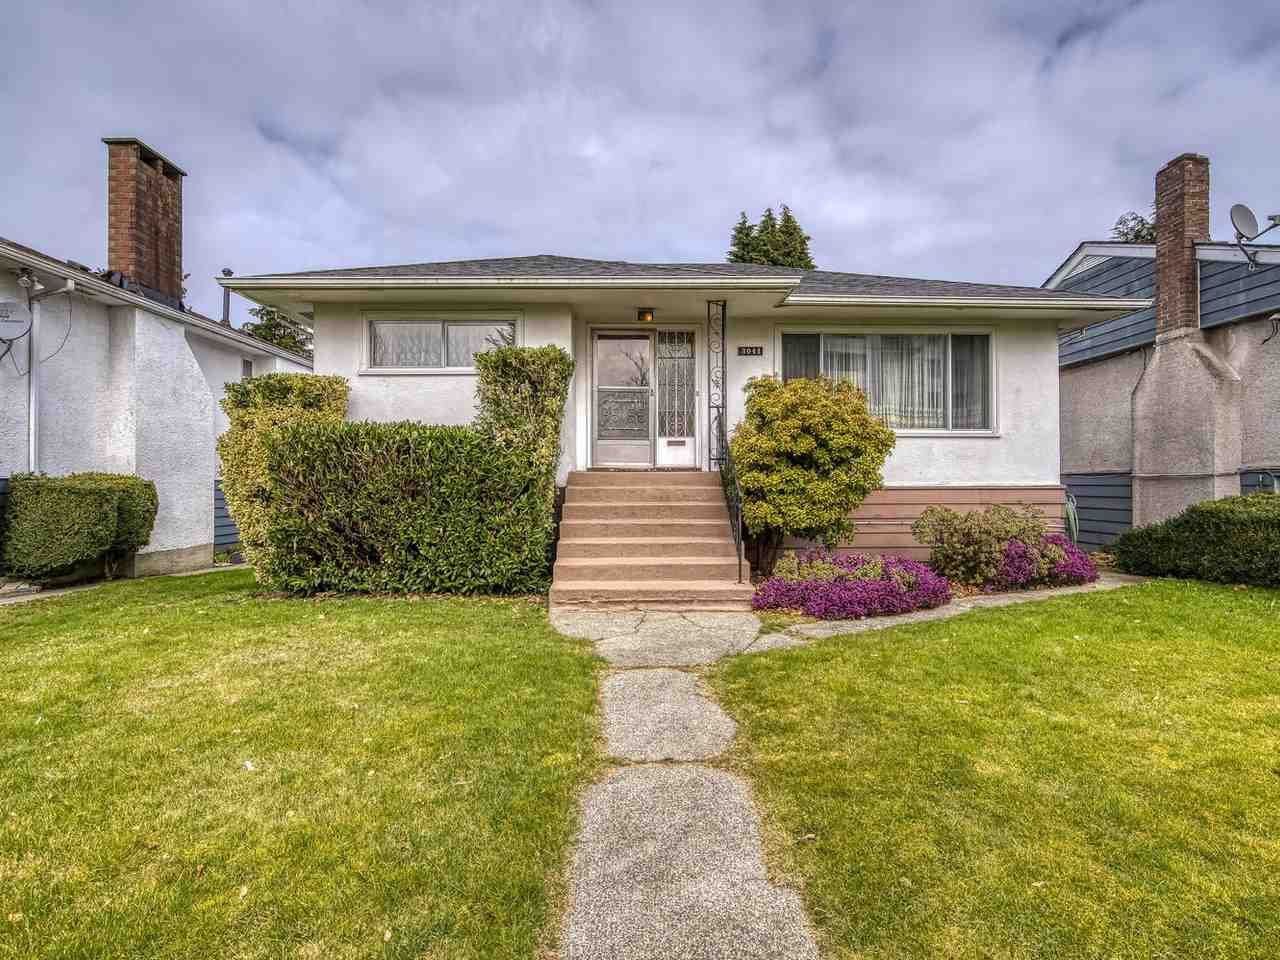 Main Photo: 3041 E 54TH Avenue in Vancouver: Killarney VE House for sale (Vancouver East)  : MLS®# R2548392